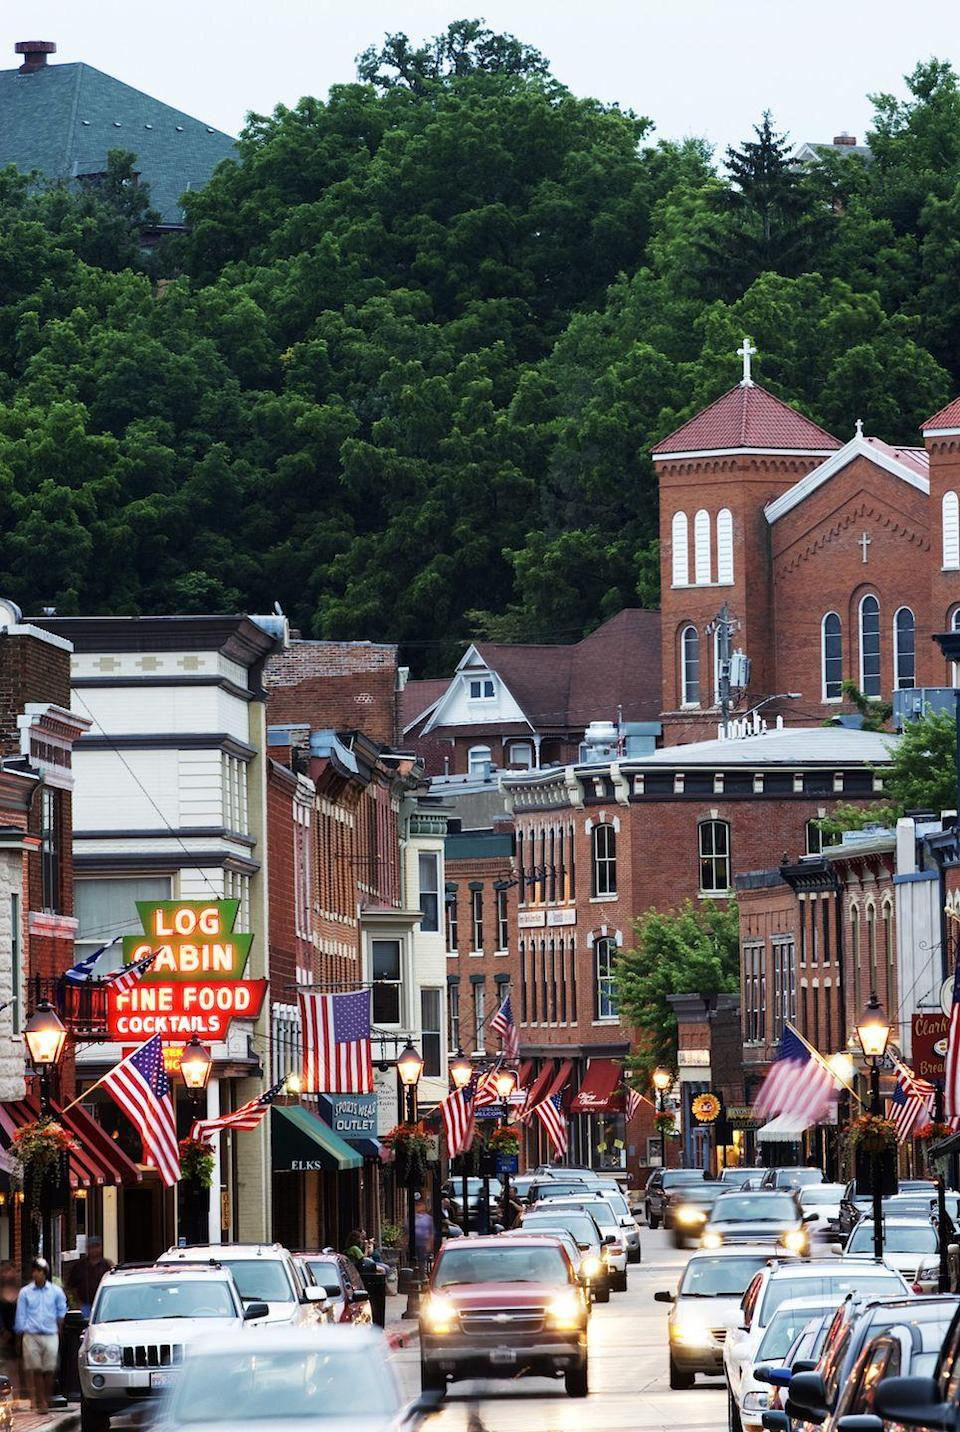 """<p>Another scenic town rich in history, the town of Galena boasts well-preserved buildings. On weekends, the town comes even more to life with weekend day trippers seeking excellent antiques shopping, but what you may not know is that the town is surrounded by a few <a href=""""http://www.galena.org/things-to-do/cuisine/wineries/"""" rel=""""nofollow noopener"""" target=""""_blank"""" data-ylk=""""slk:notable vineyards"""" class=""""link rapid-noclick-resp"""">notable vineyards</a>. </p><p><a href=""""https://www.housebeautiful.com/entertaining/g3527/genius-wine-hacks/"""" rel=""""nofollow noopener"""" target=""""_blank"""" data-ylk=""""slk:10 tricks every wine lover should know »"""" class=""""link rapid-noclick-resp""""><em>10 tricks every wine lover should know »</em></a></p>"""